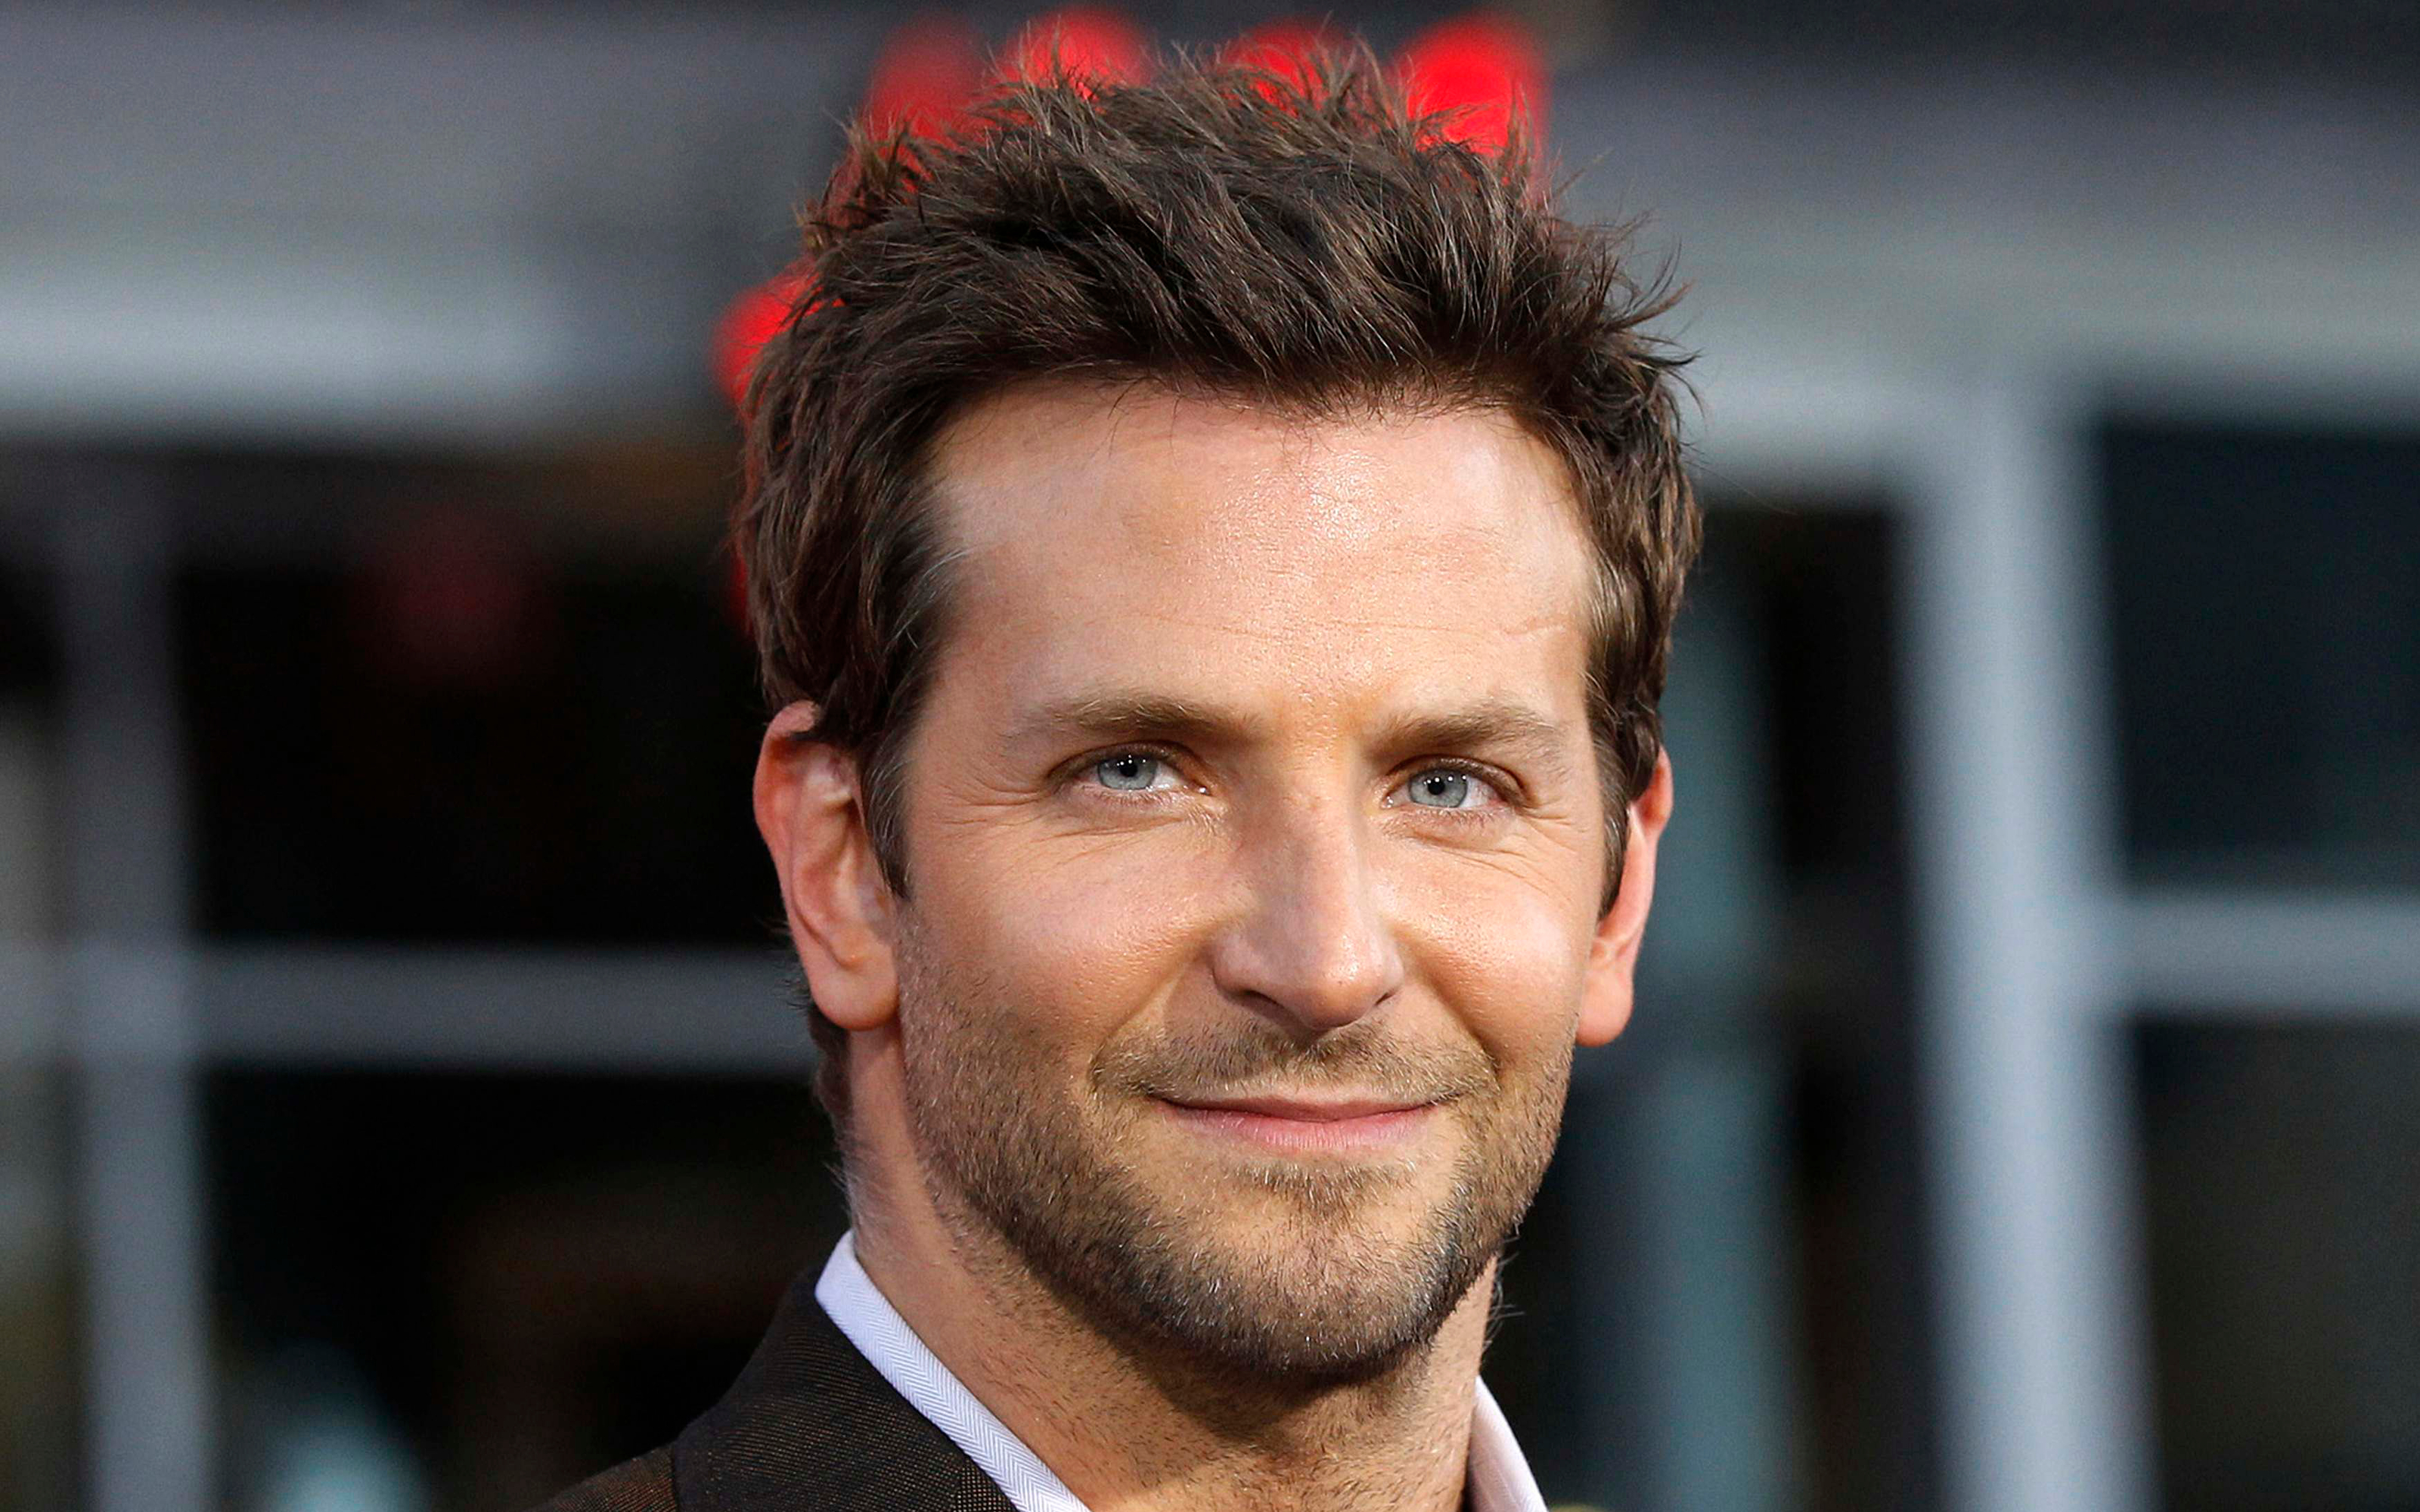 Bradley Cooper Wallpapers High Resolution and Quality Download 3200x2000